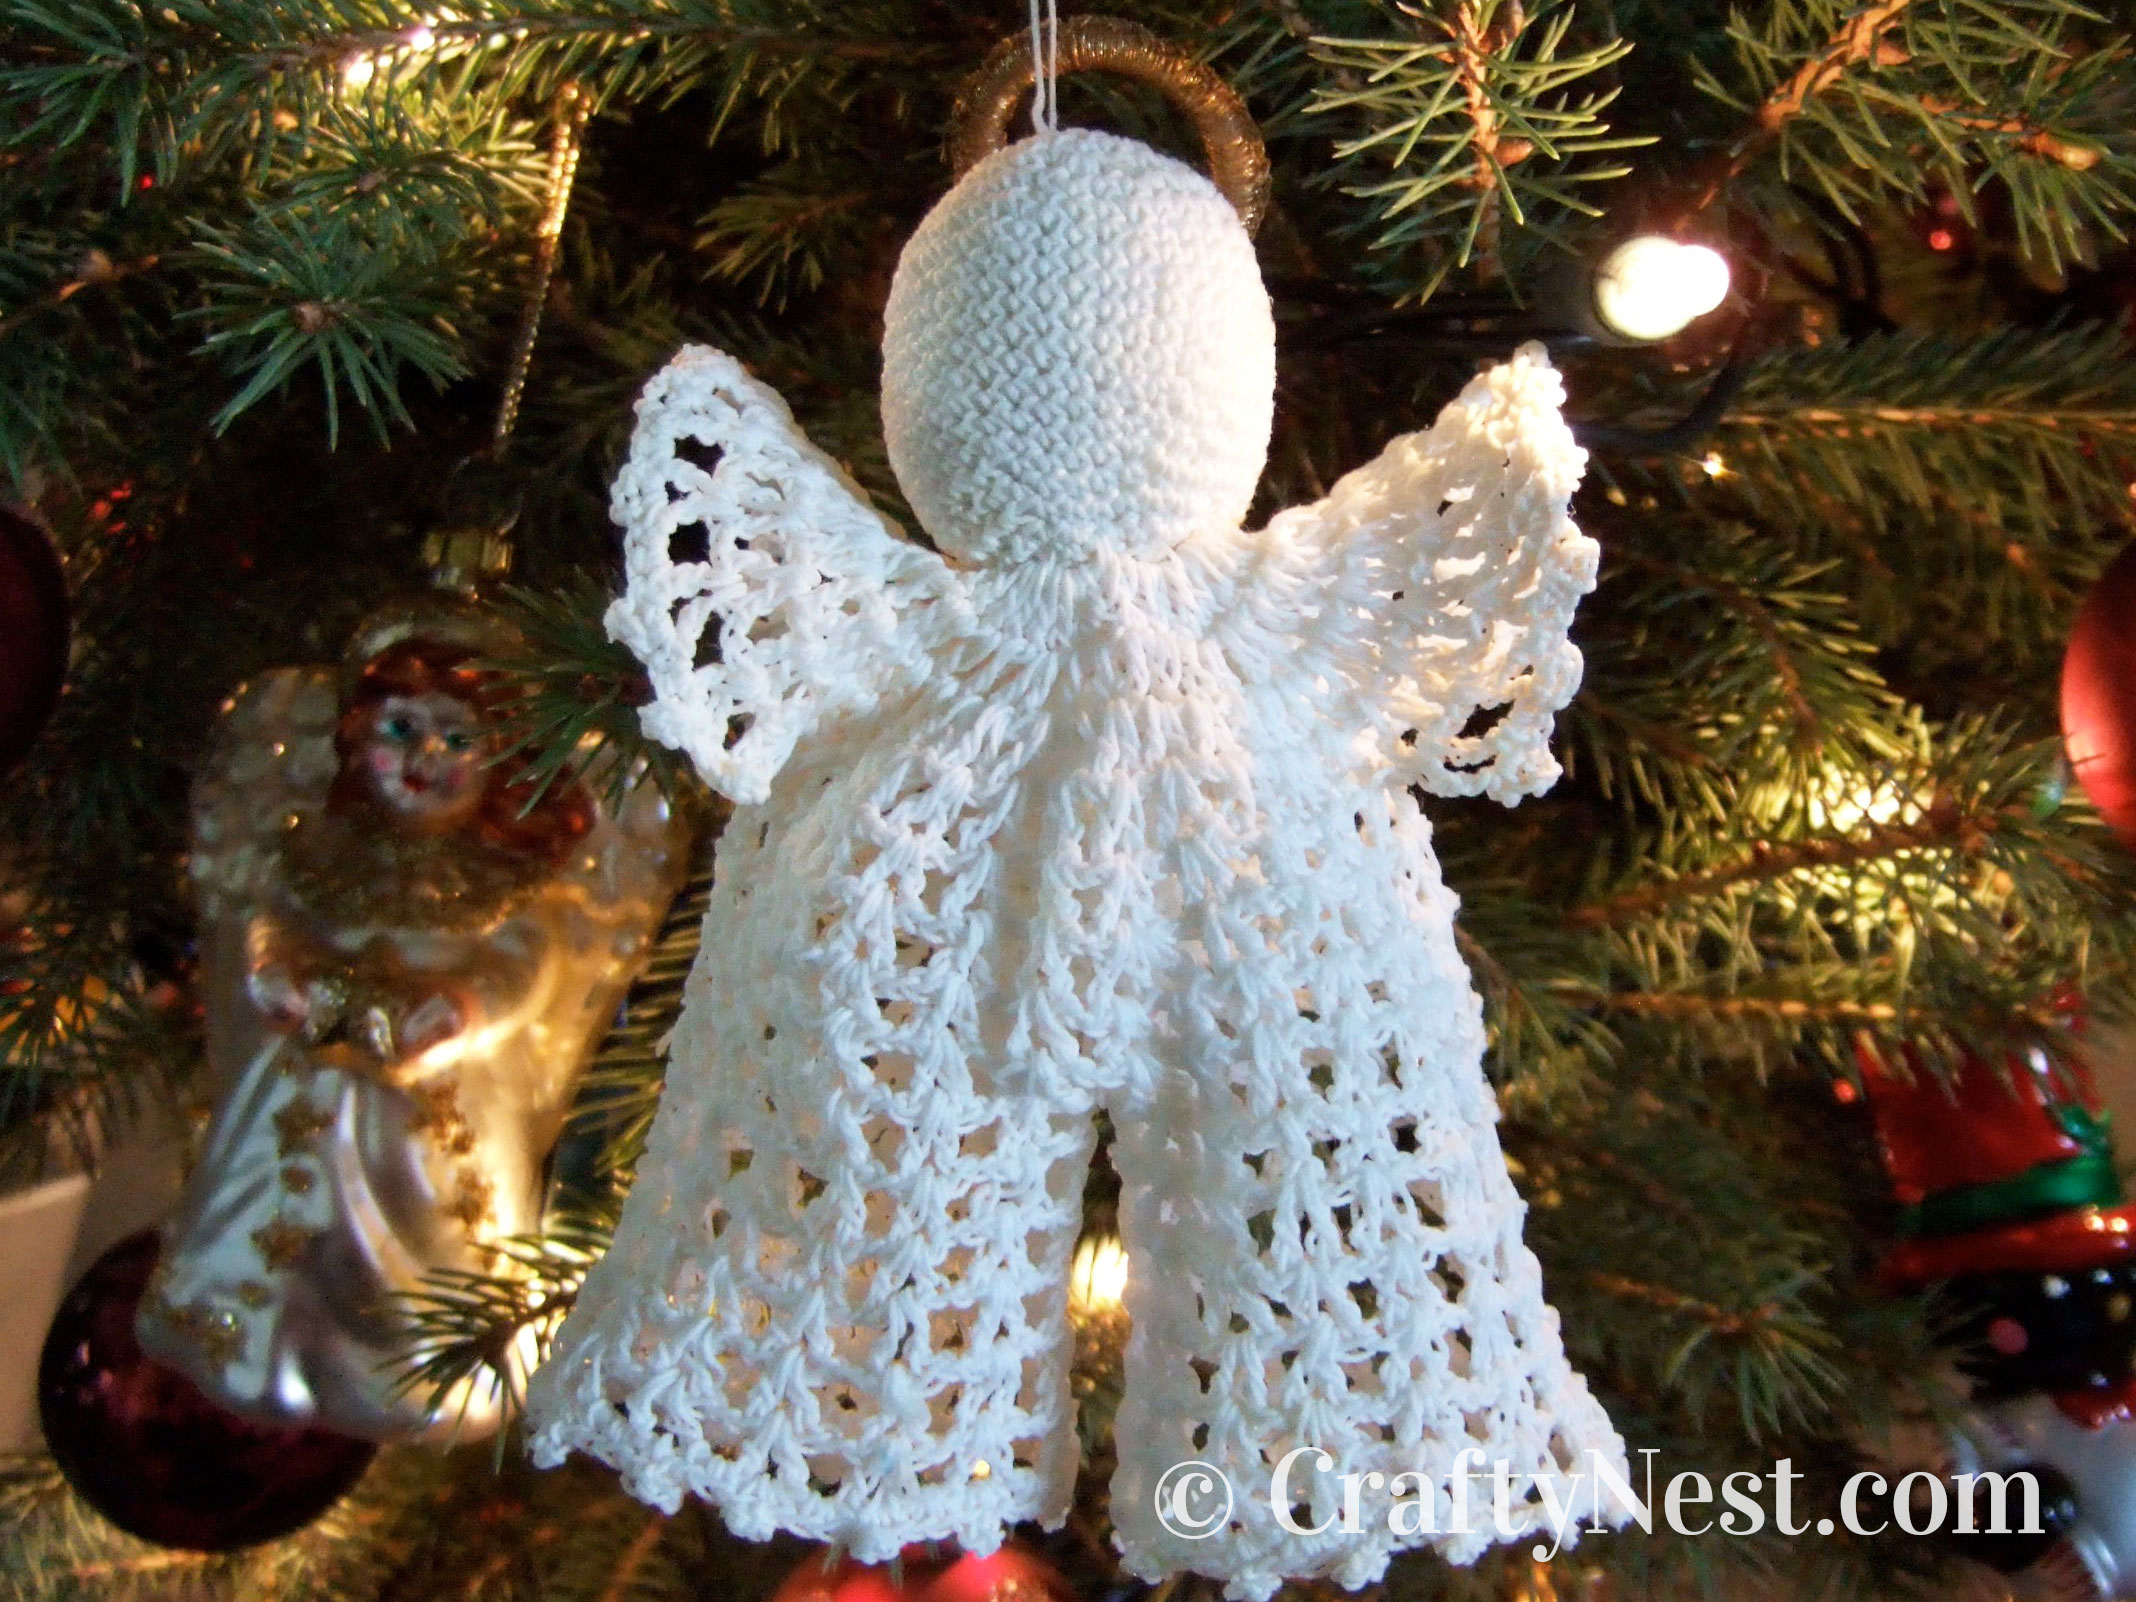 Angel Christmas tree ornament with pants, photo